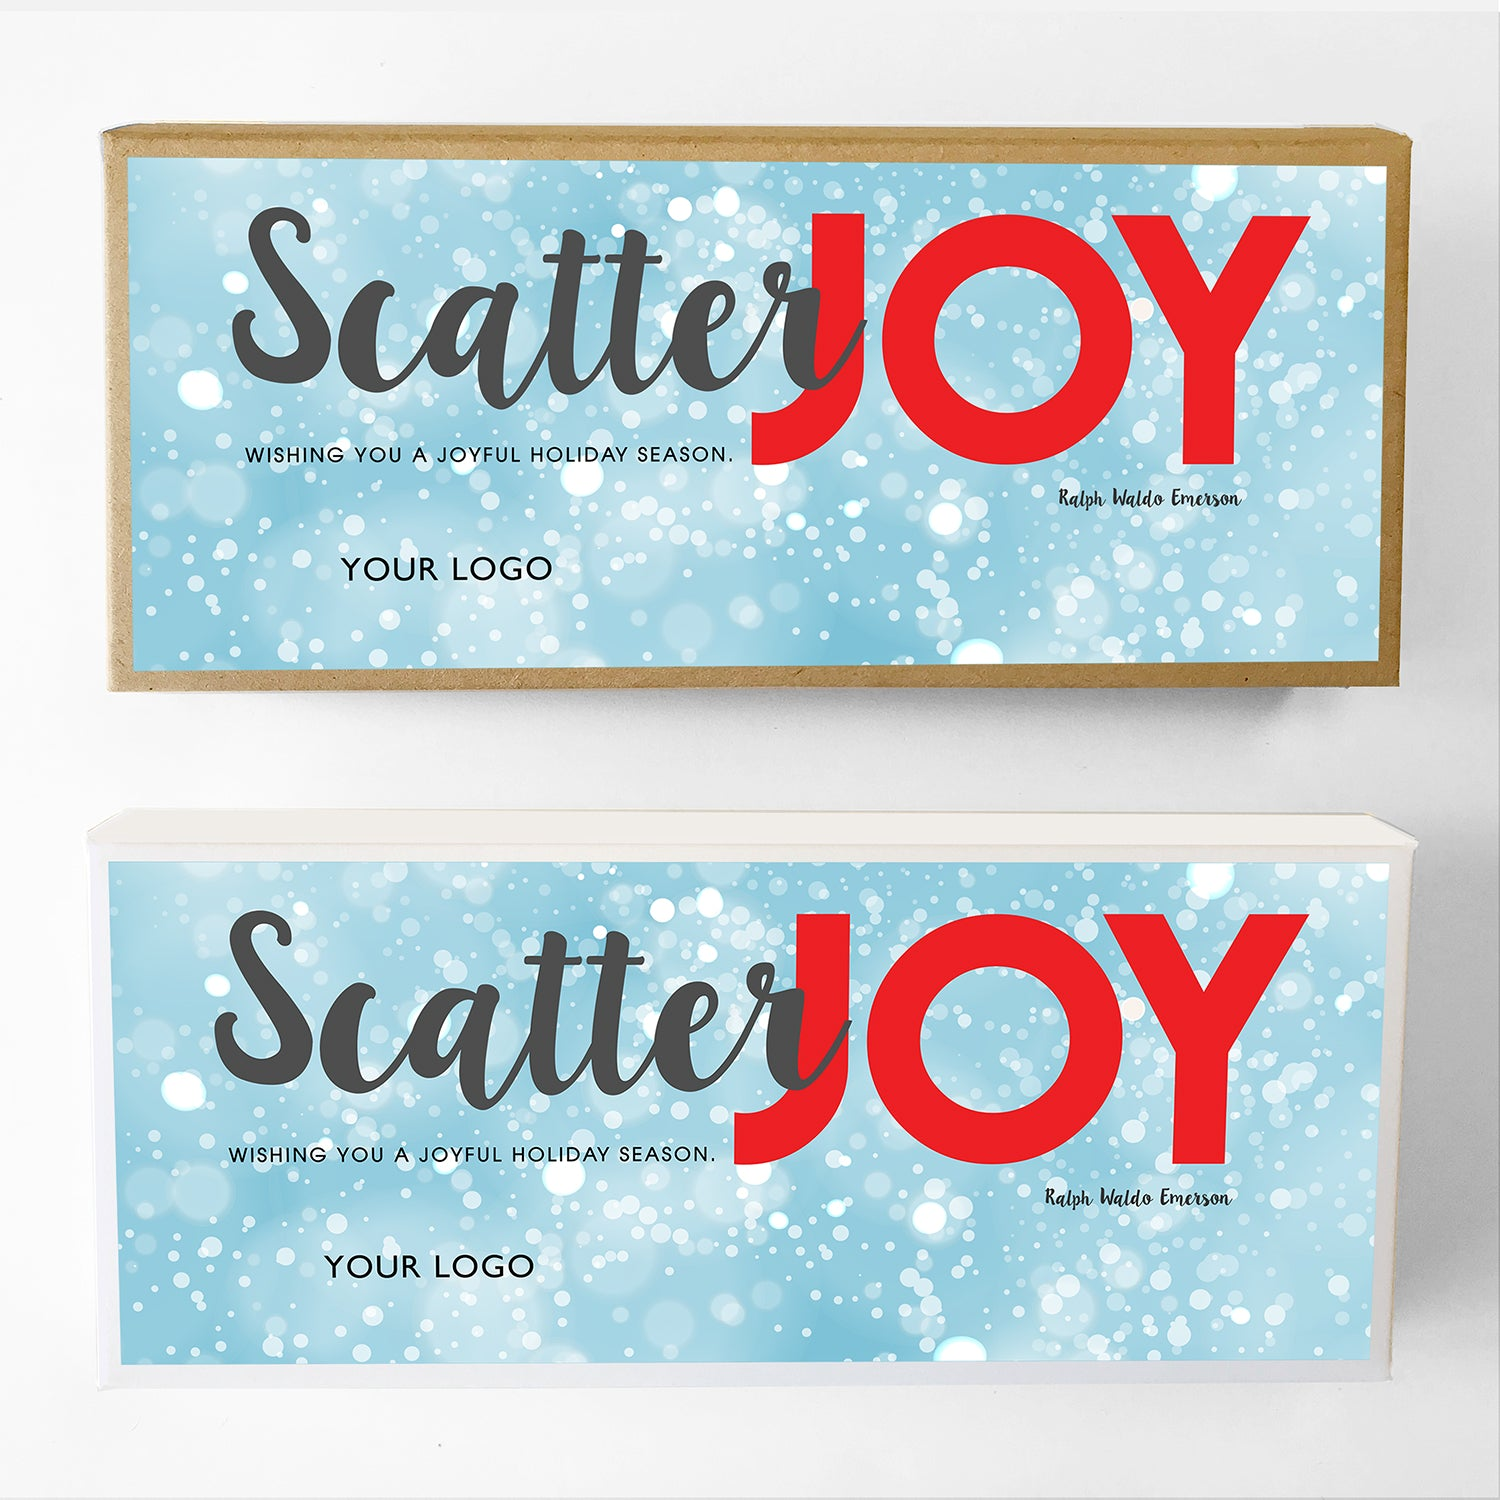 Scatter Joy Custom Caramel Holiday Gift Box Large